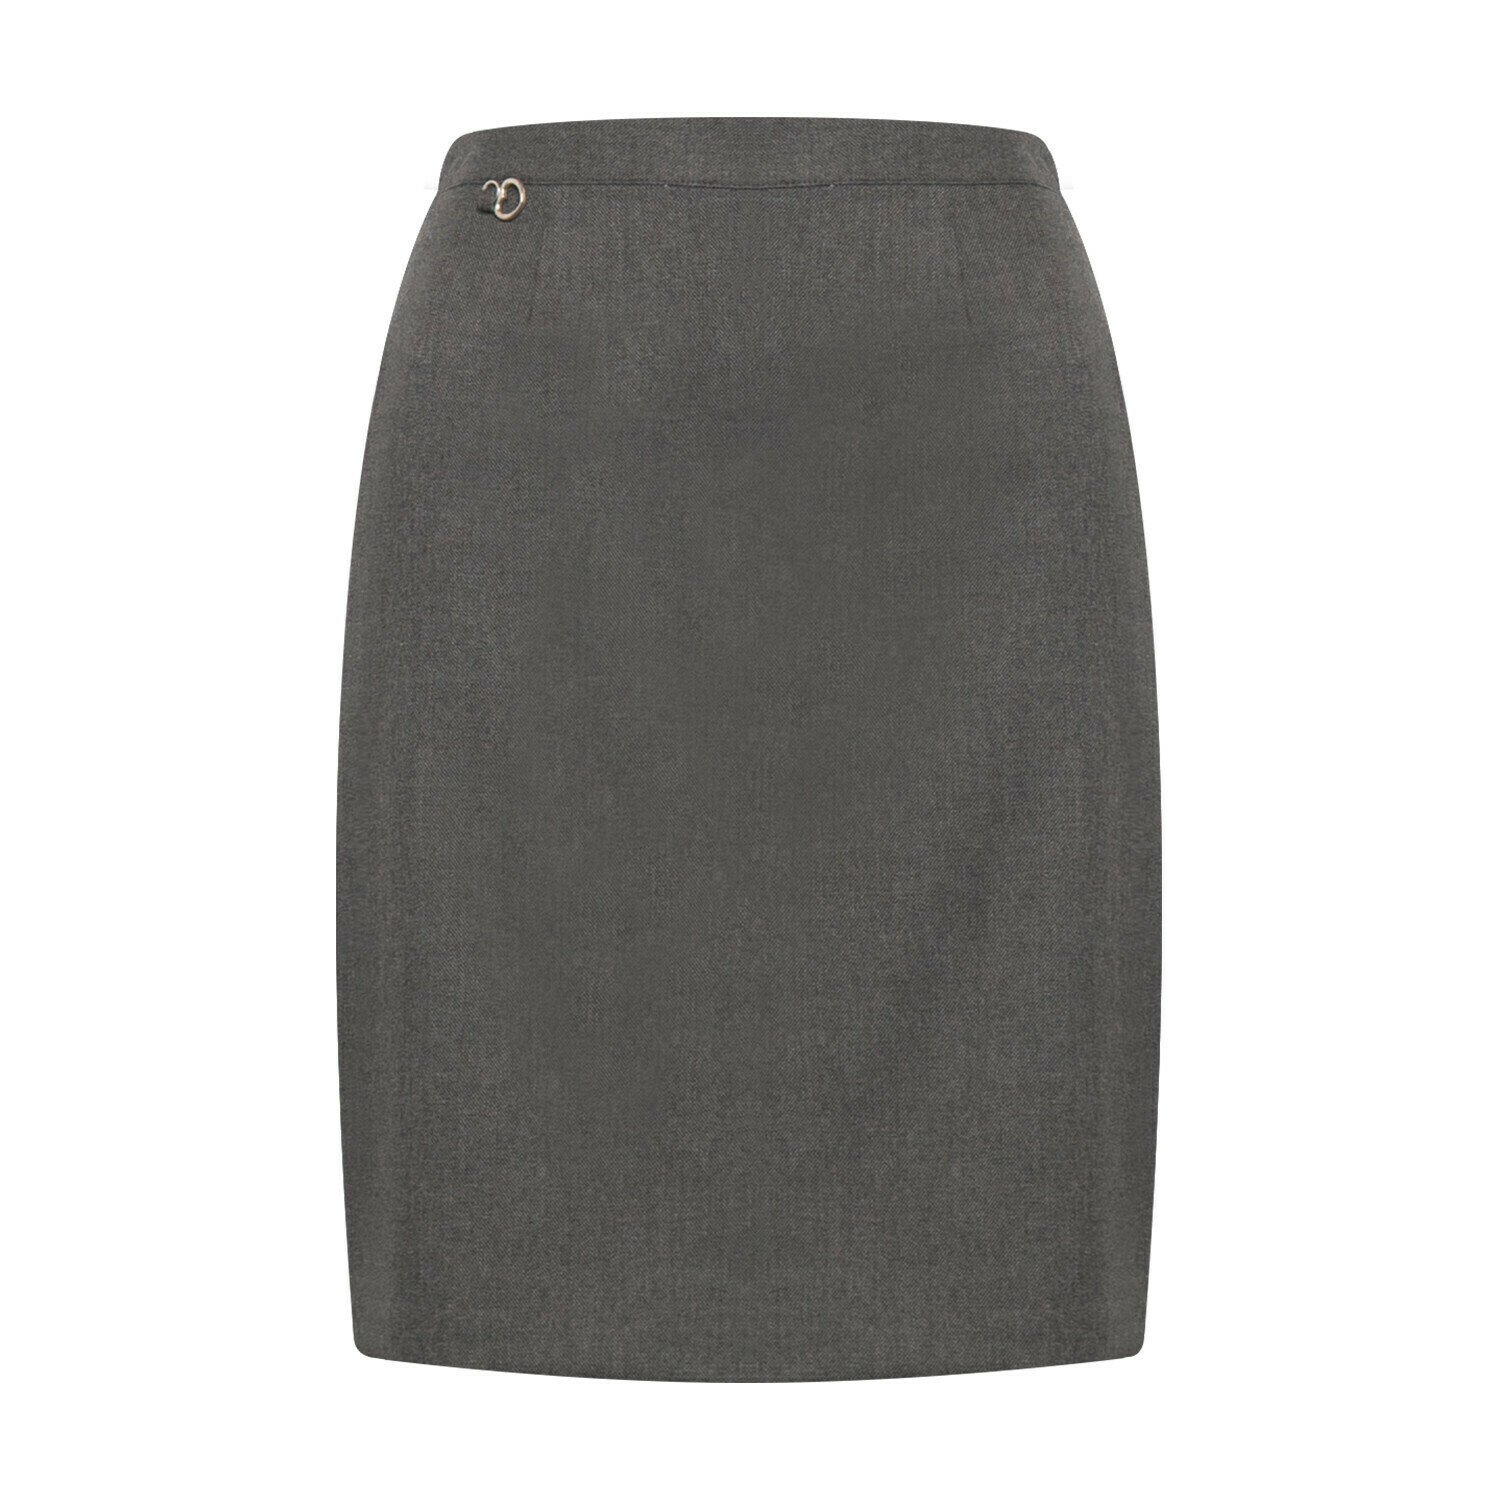 Primary School 'Amber A-Line' Pleated Skirt in Grey (From Age 3-4) 'Online Exclusive'